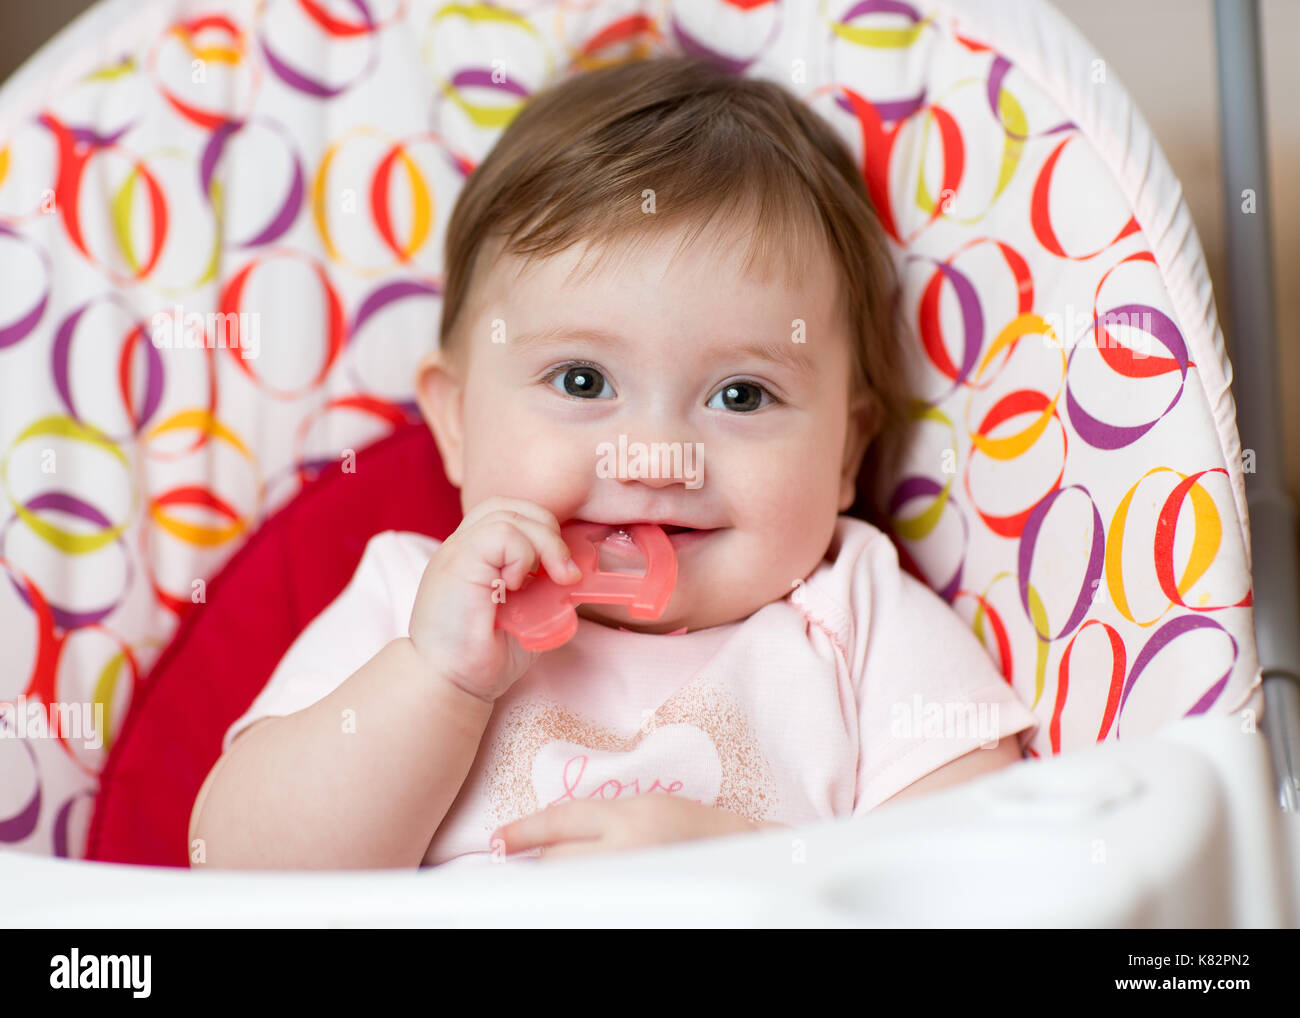 Cute baby chewing on teething toy. First teeth. - Stock Image